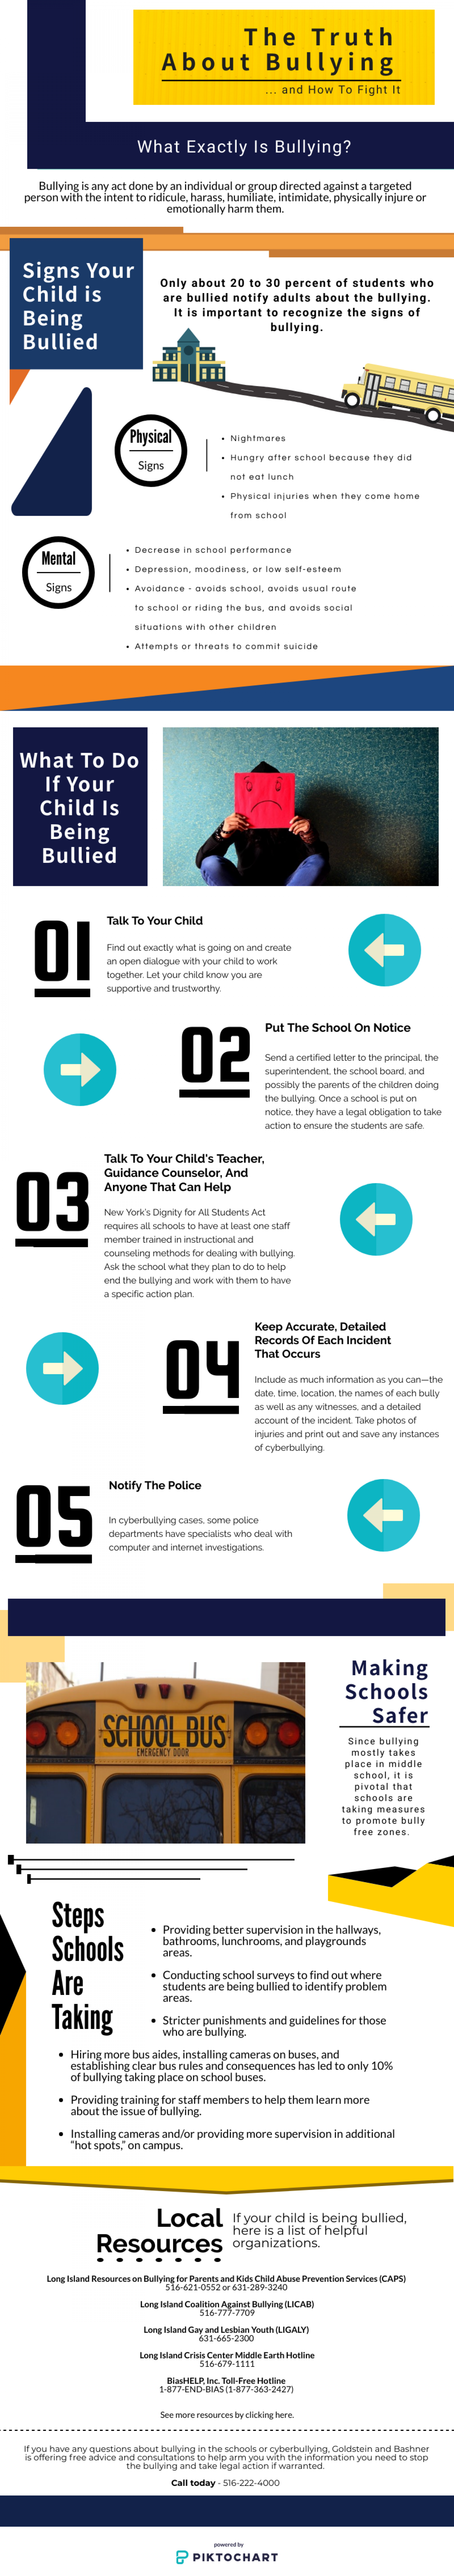 The Truth about Bullying and how to Fight it Infographic